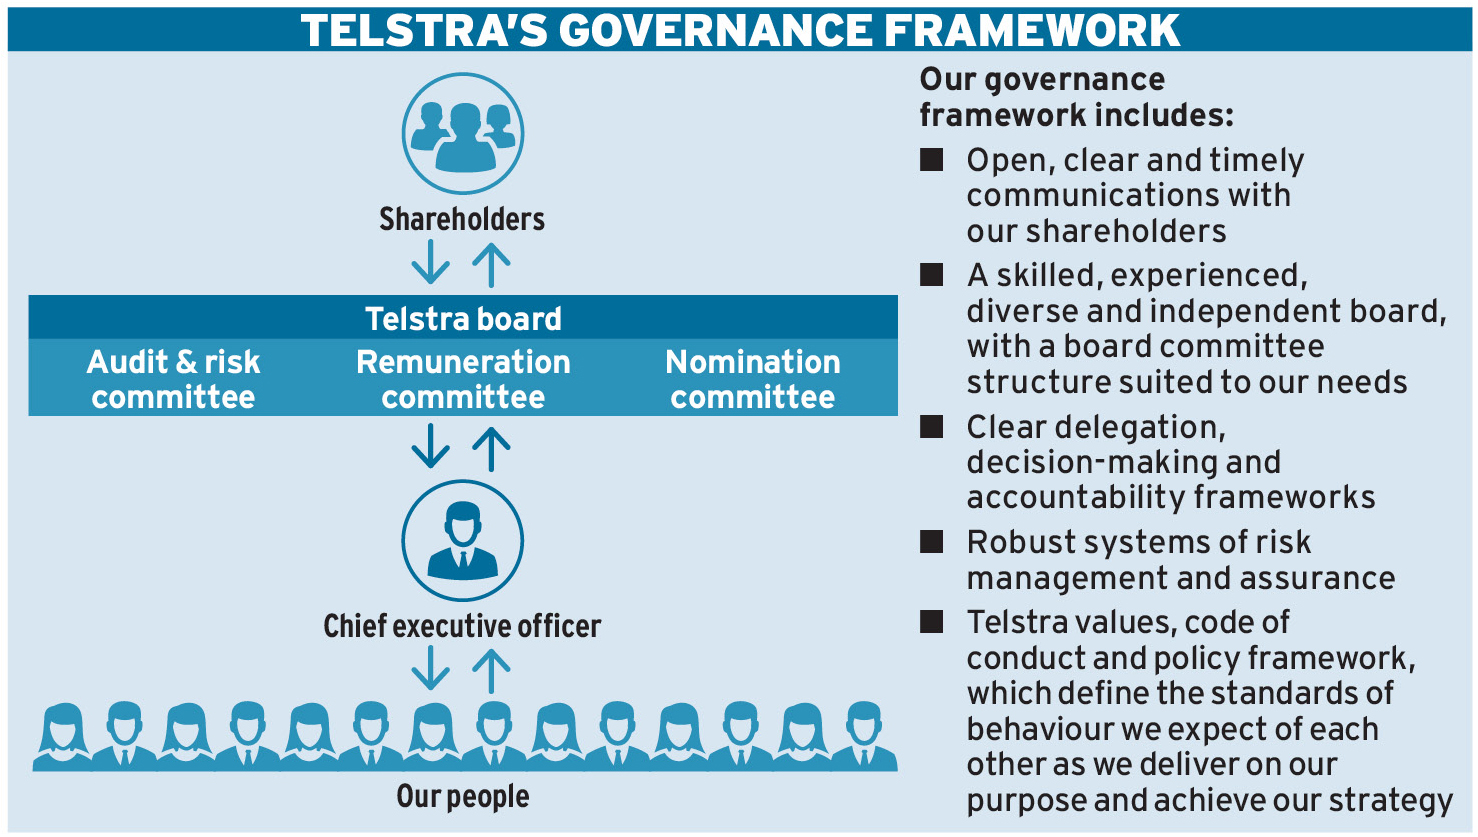 Ethical approach at Telstra | Ethical Boardroom